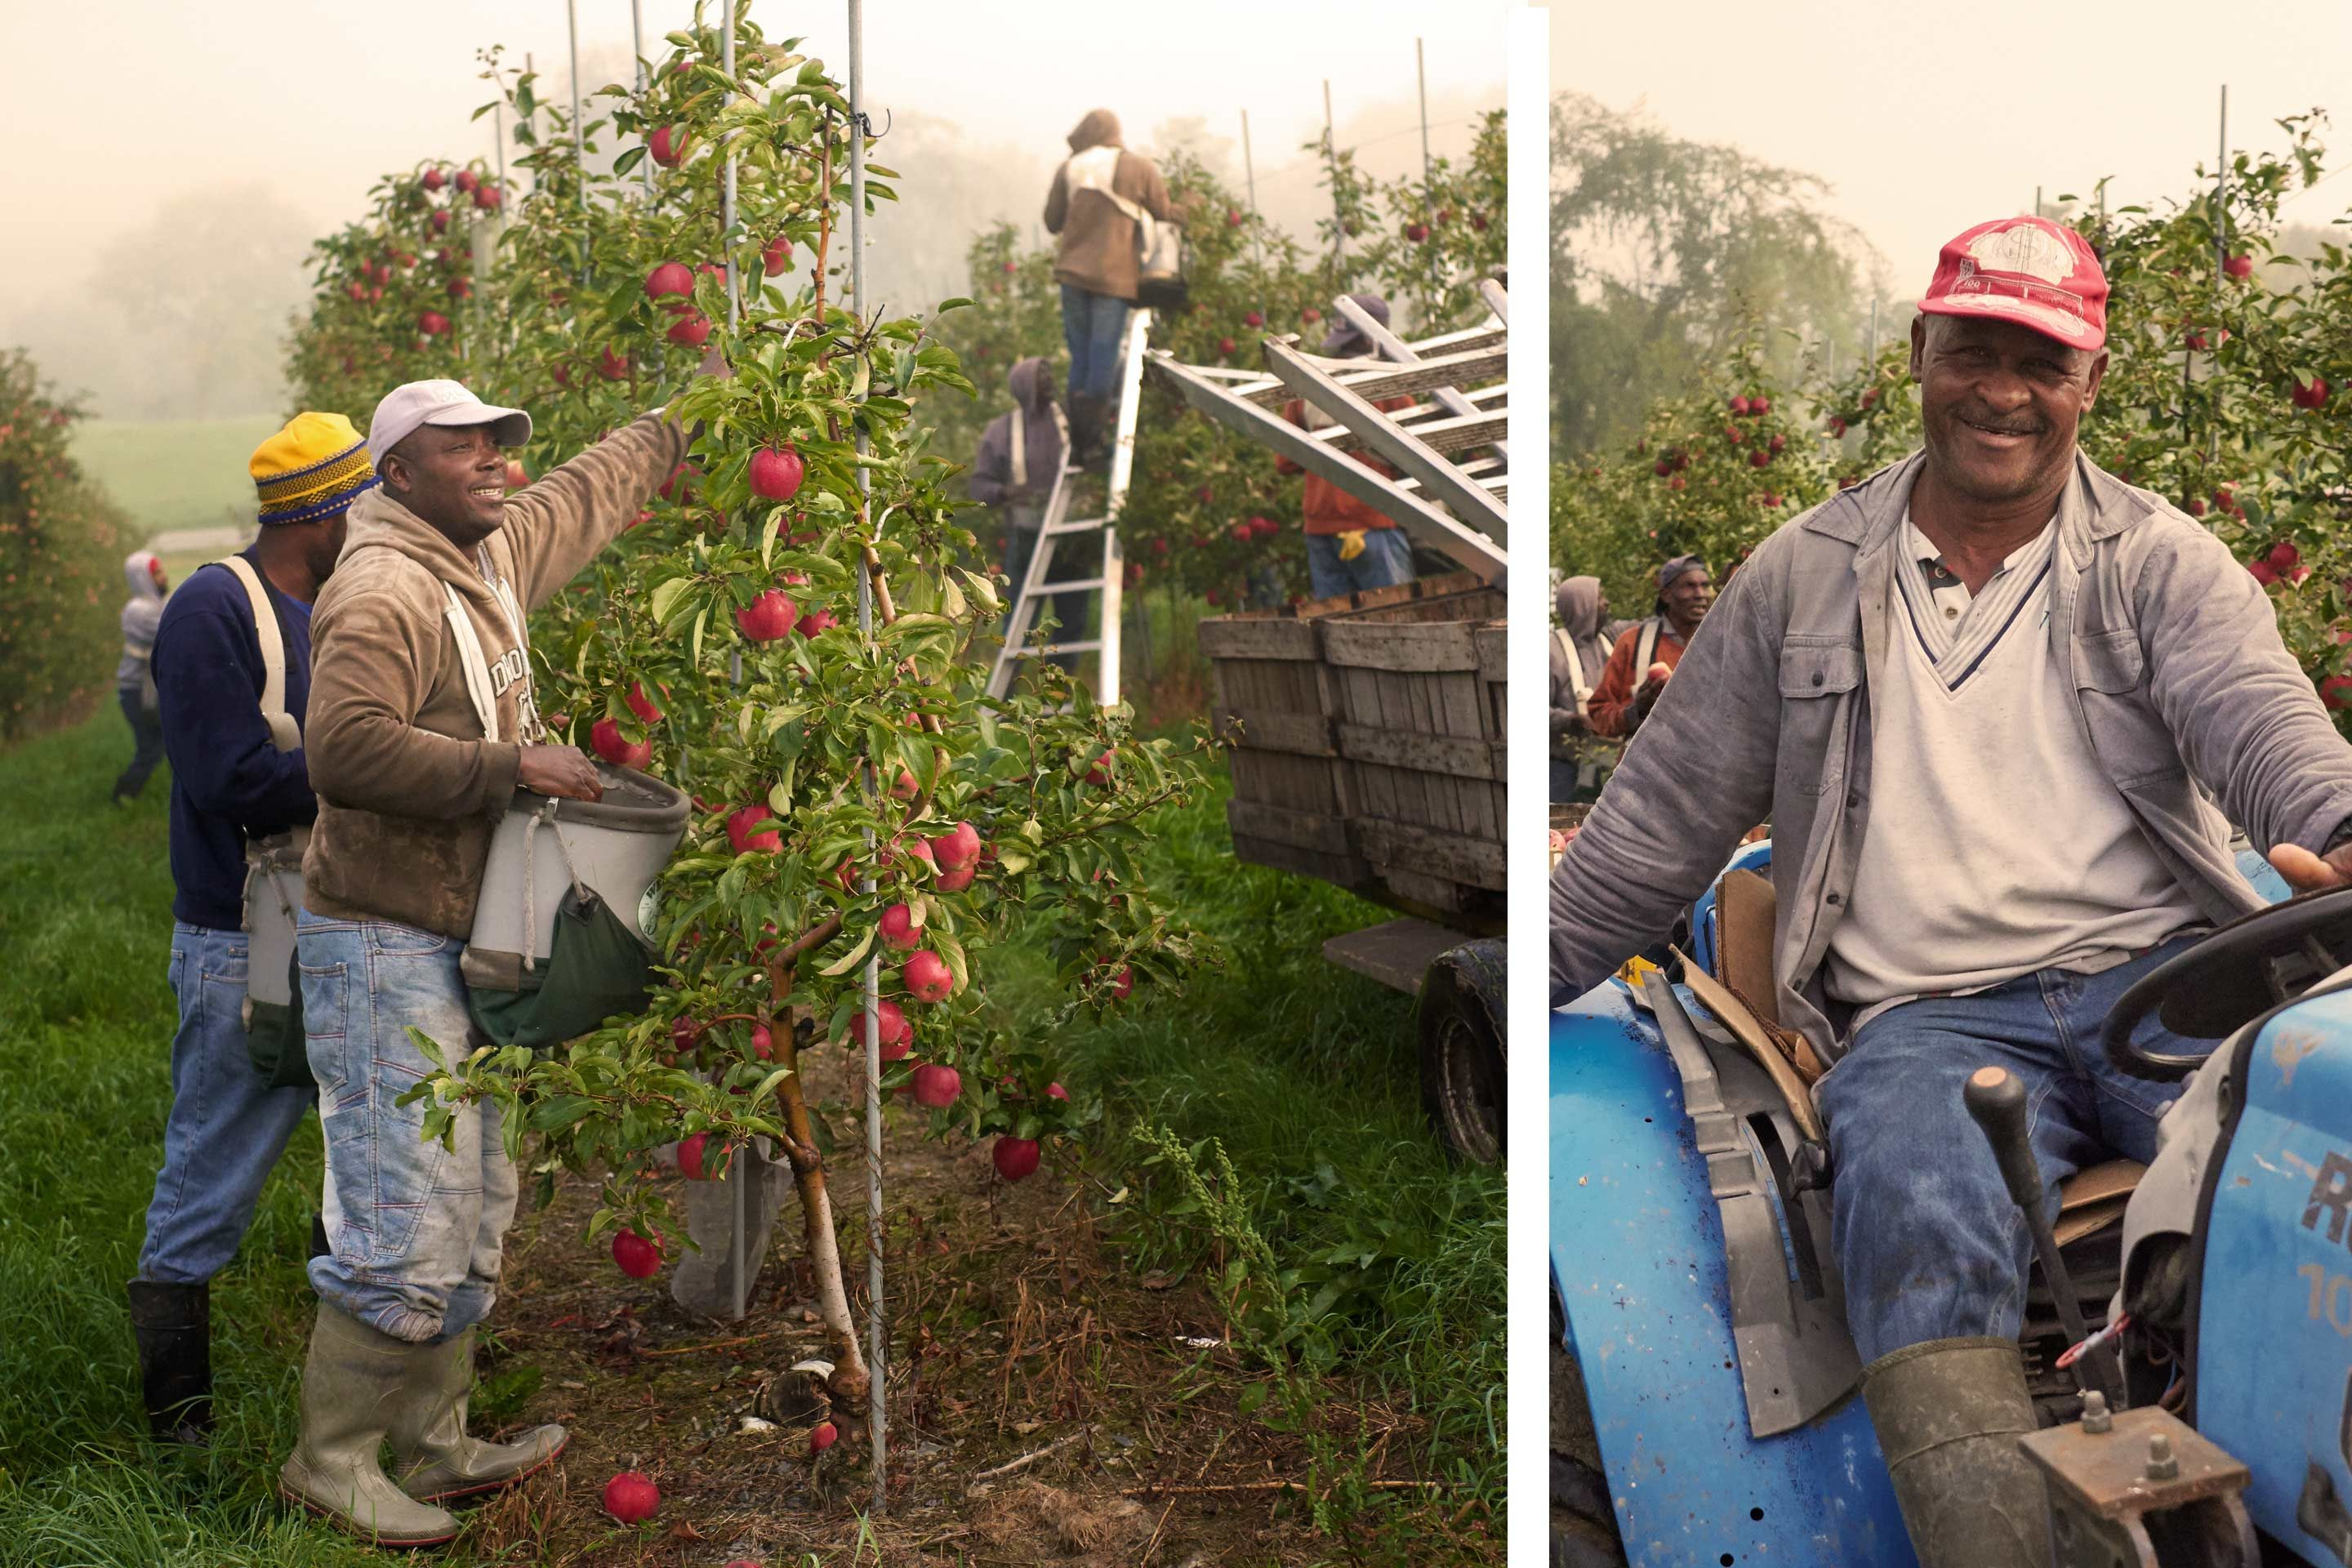 Champlain-Orchard-Workers.jpg